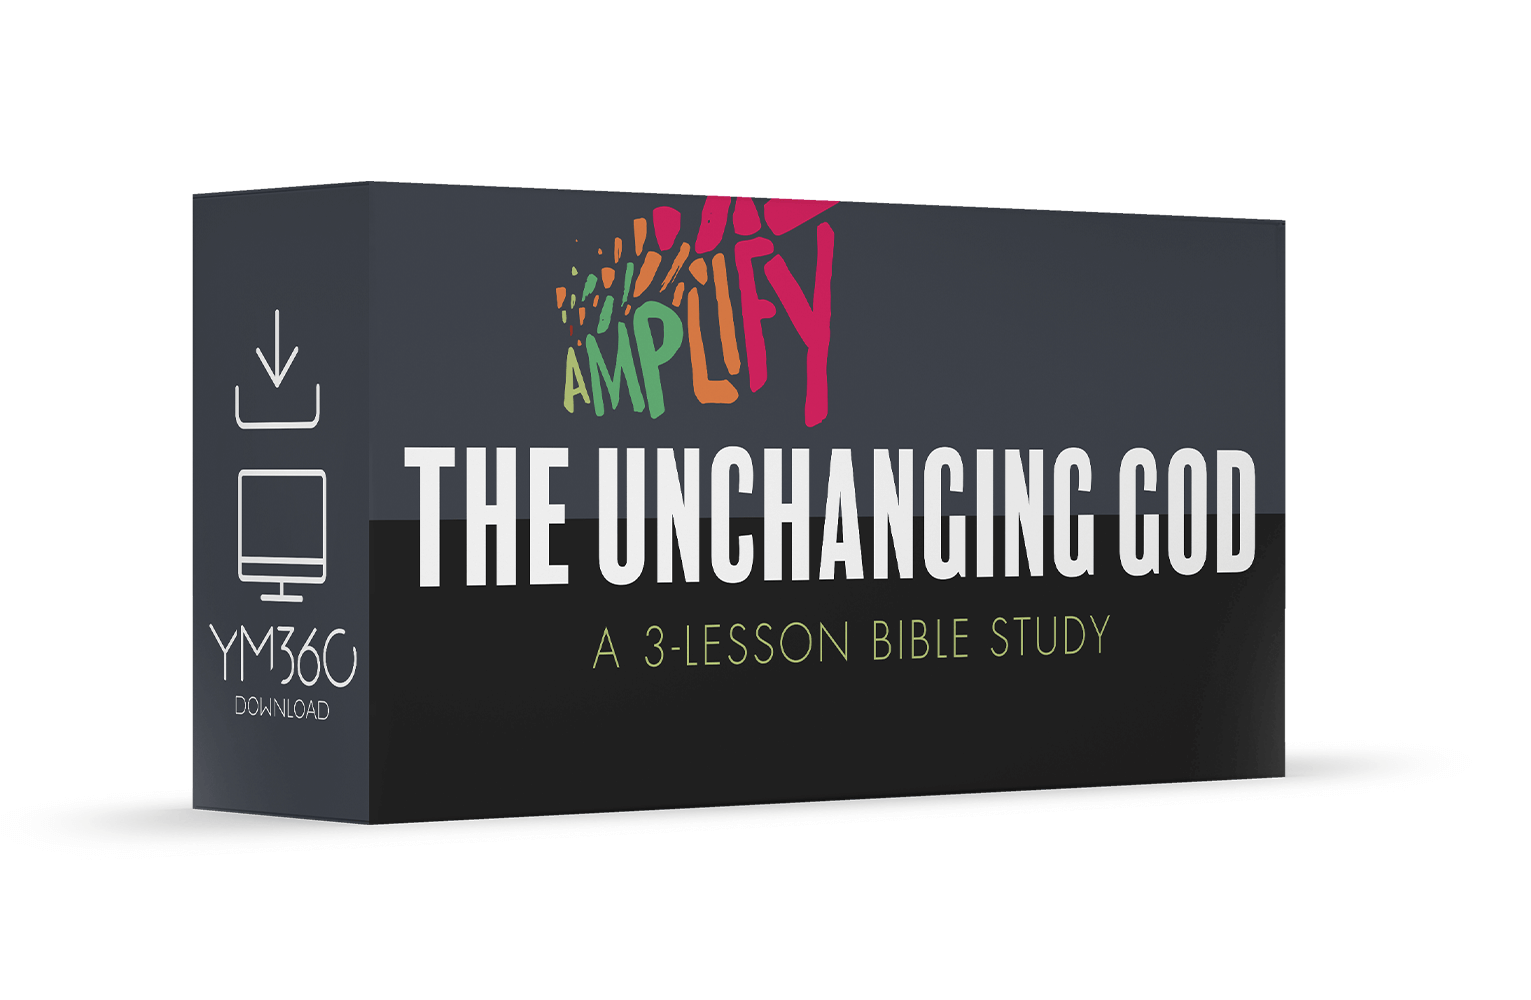 The Unchanging God: A 3-Lesson Bible Study